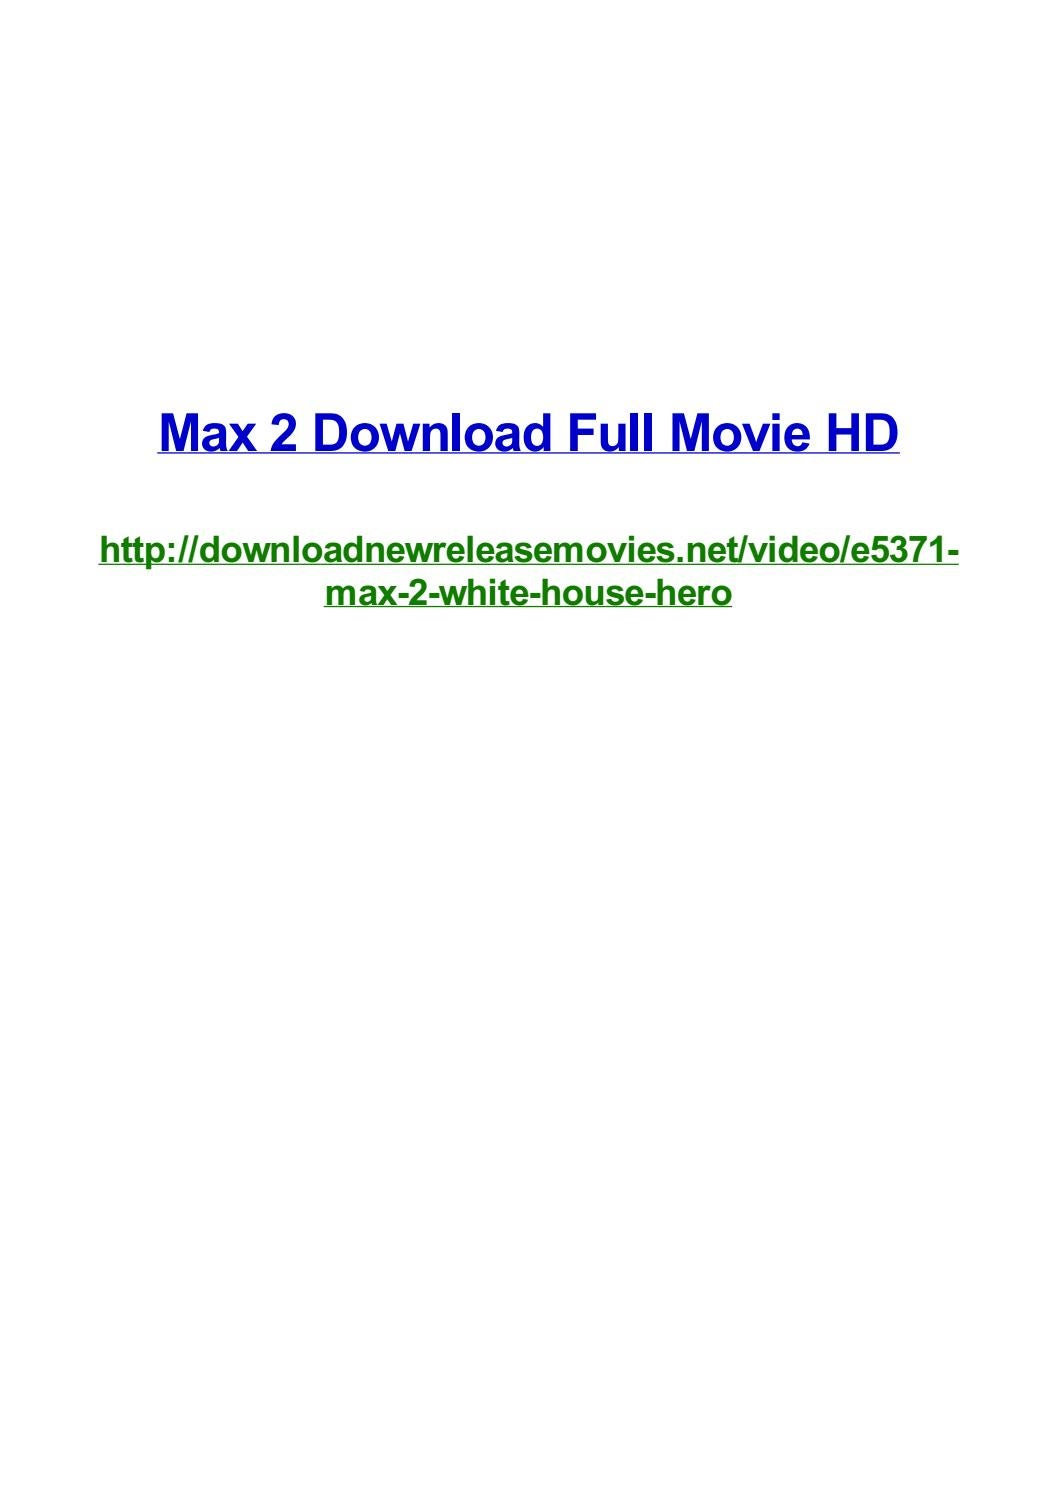 Max 2 Download Full Movie Hd By Frank Seamons Issuu